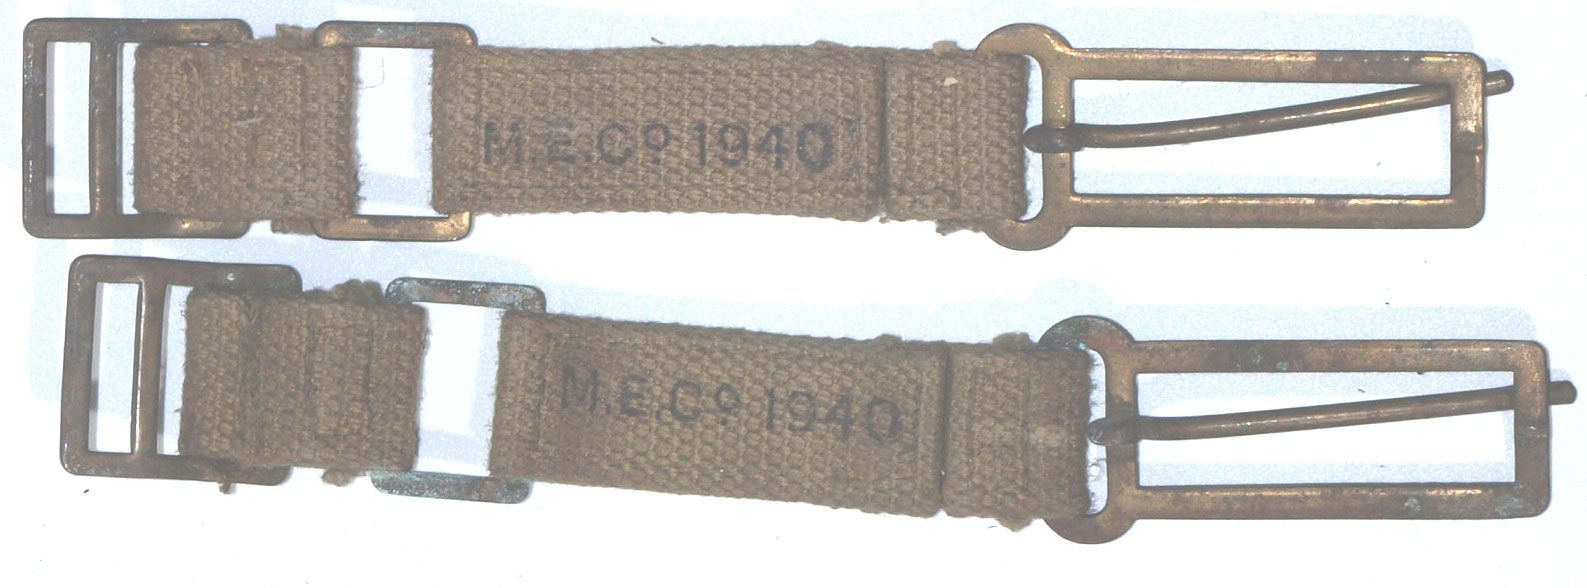 37 Pattern Brace (Strap) Attachments-matching pair dated 1940